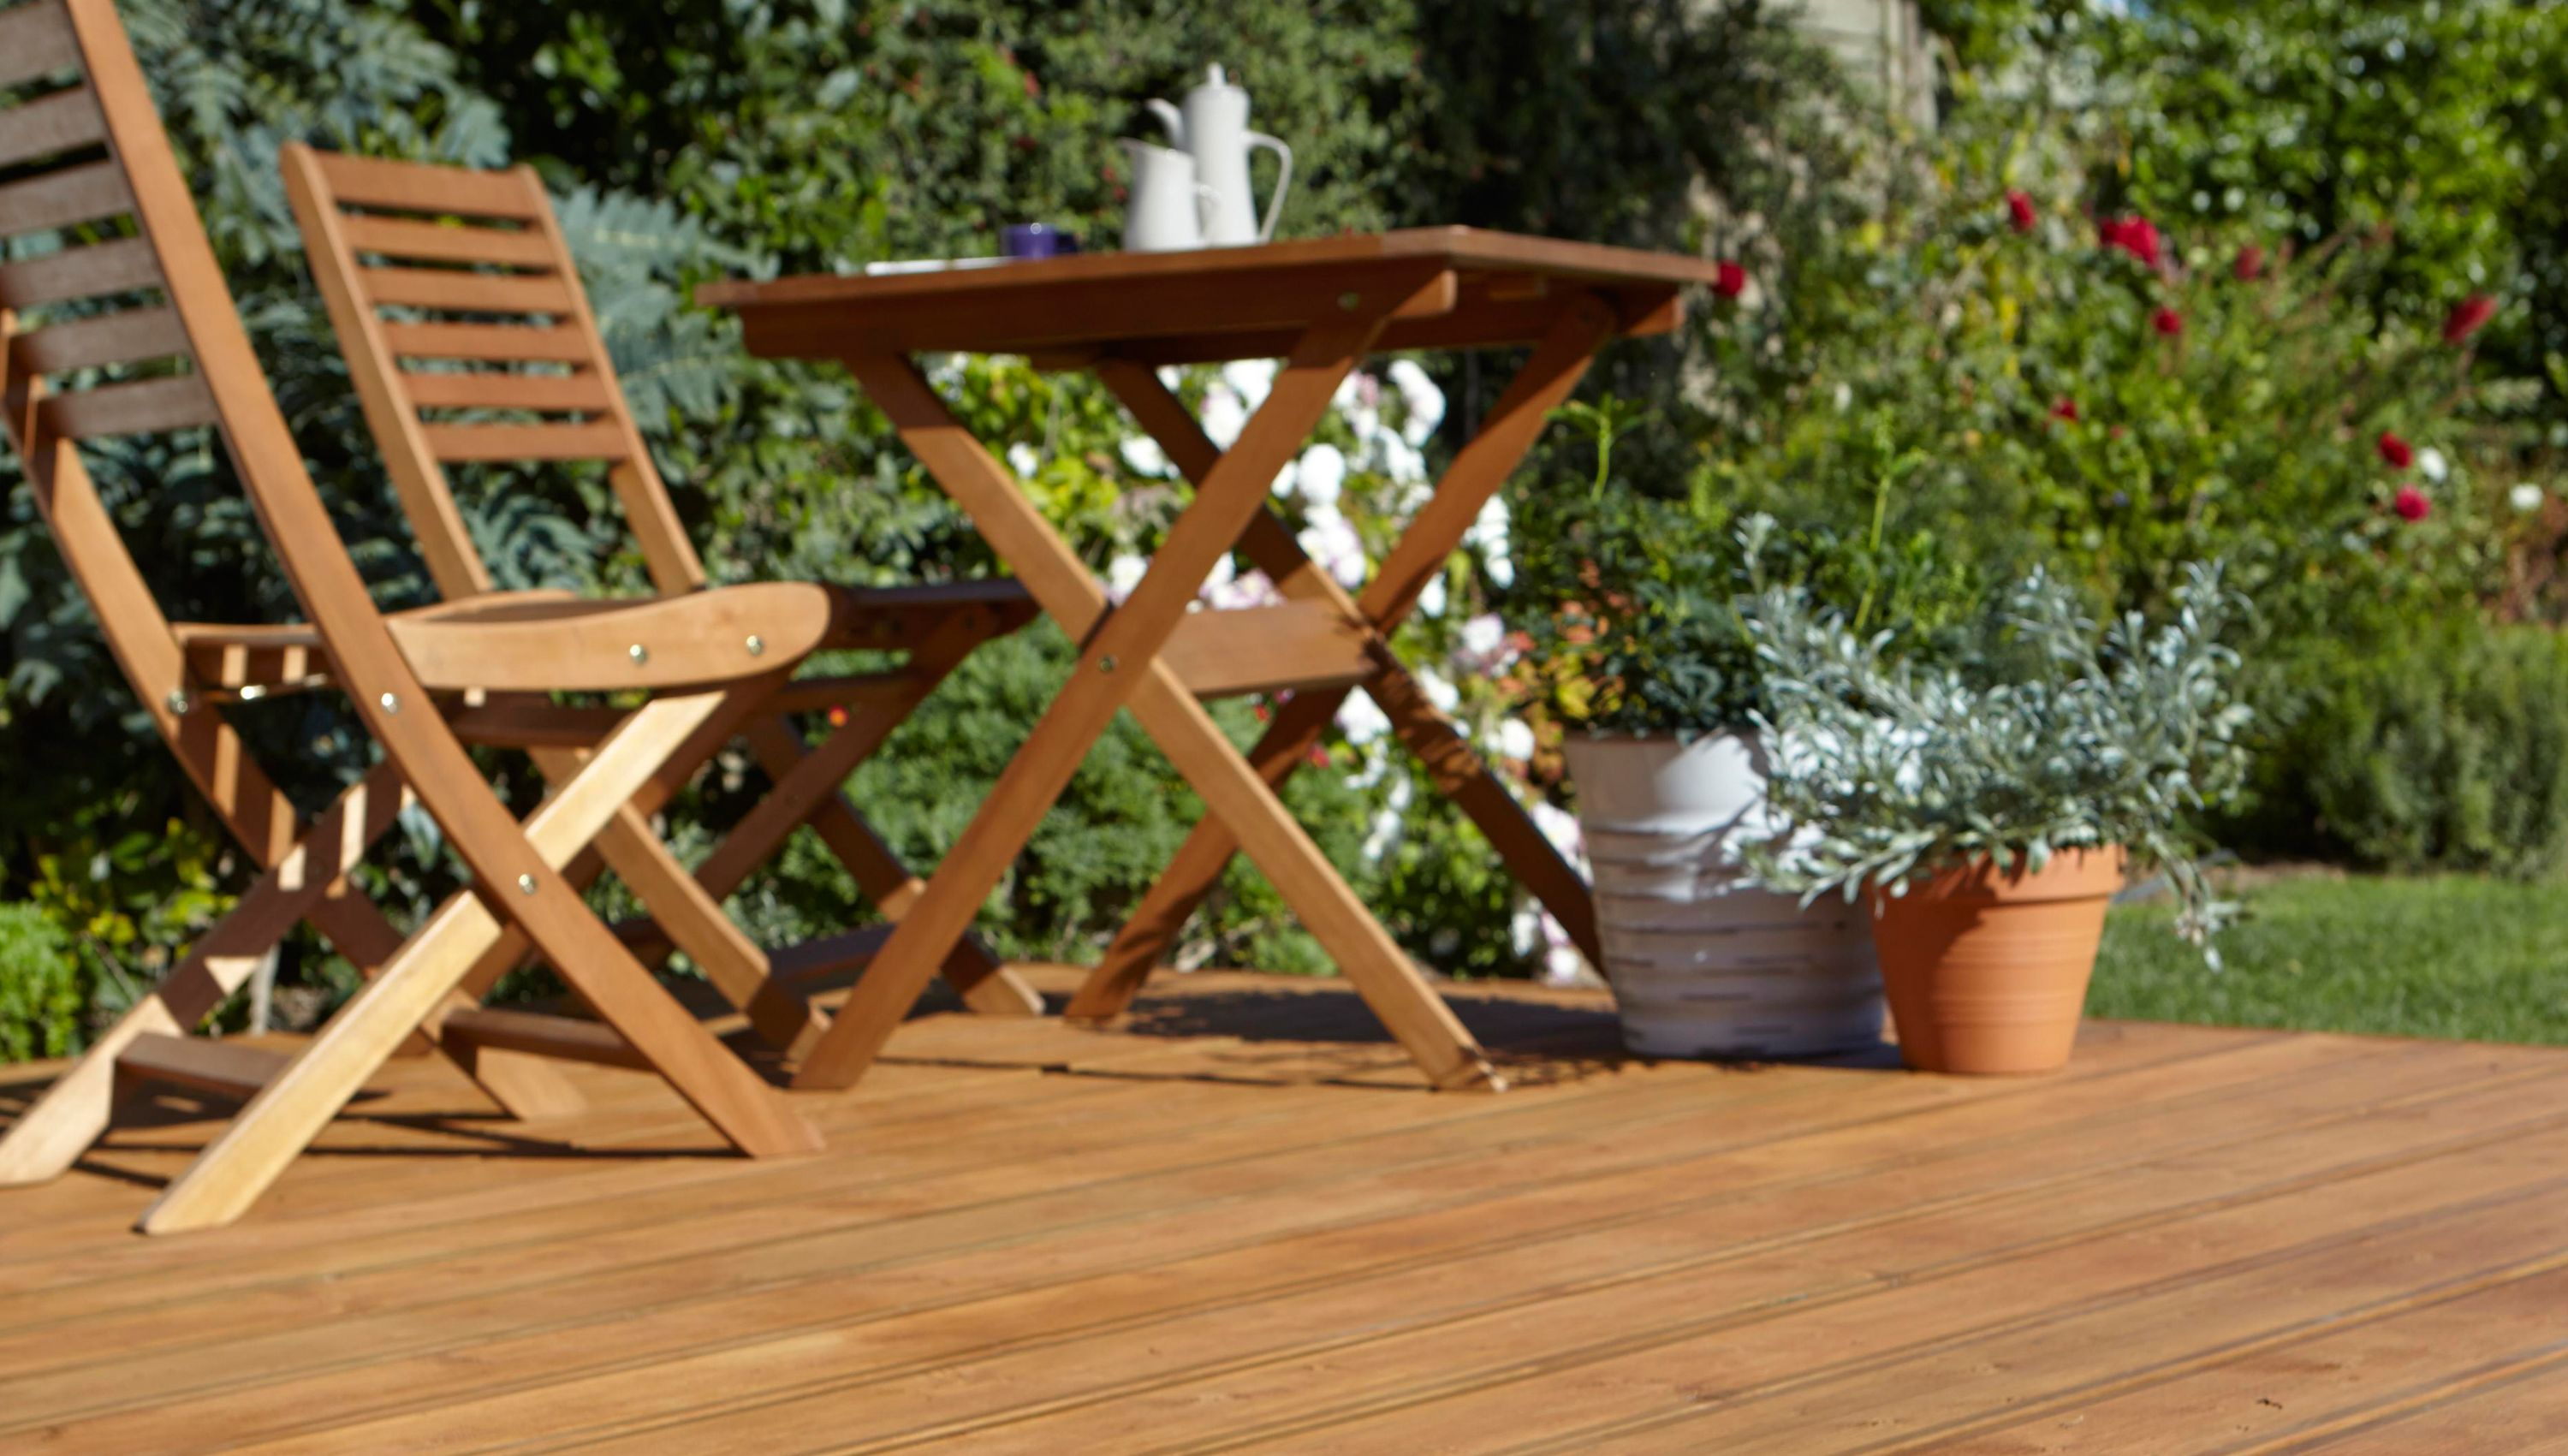 Garden Furniture Made From Decking how to build a basic, ground-level deck | help & ideas | diy at b&q